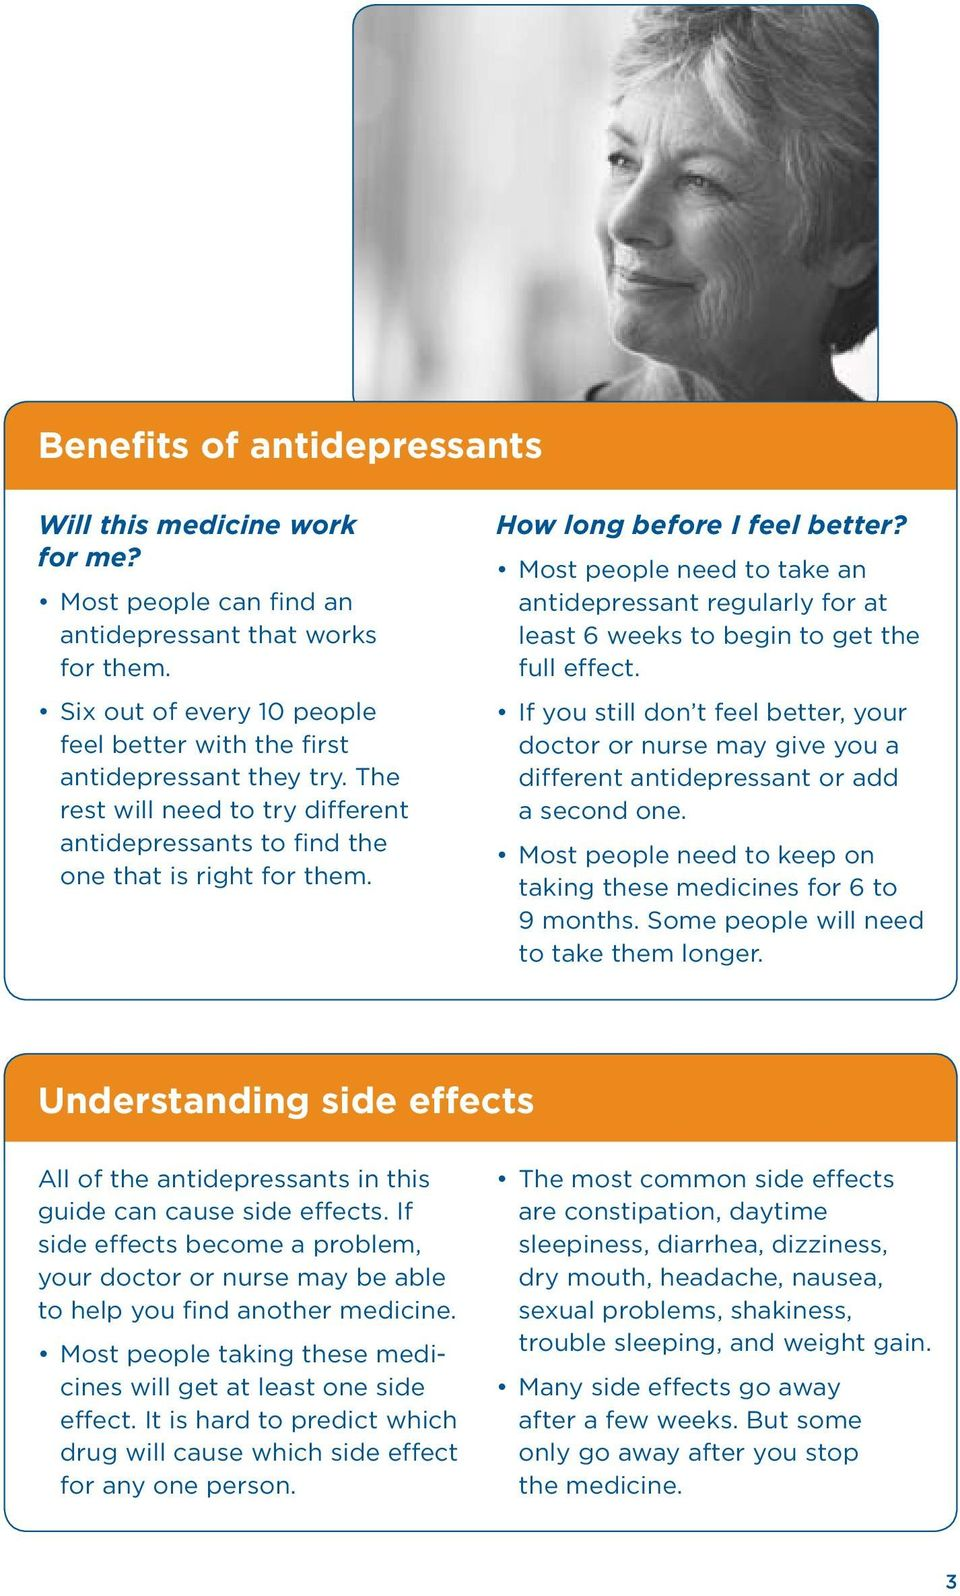 Most people need to take an antidepressant regularly for at least 6 weeks to begin to get the full effect.